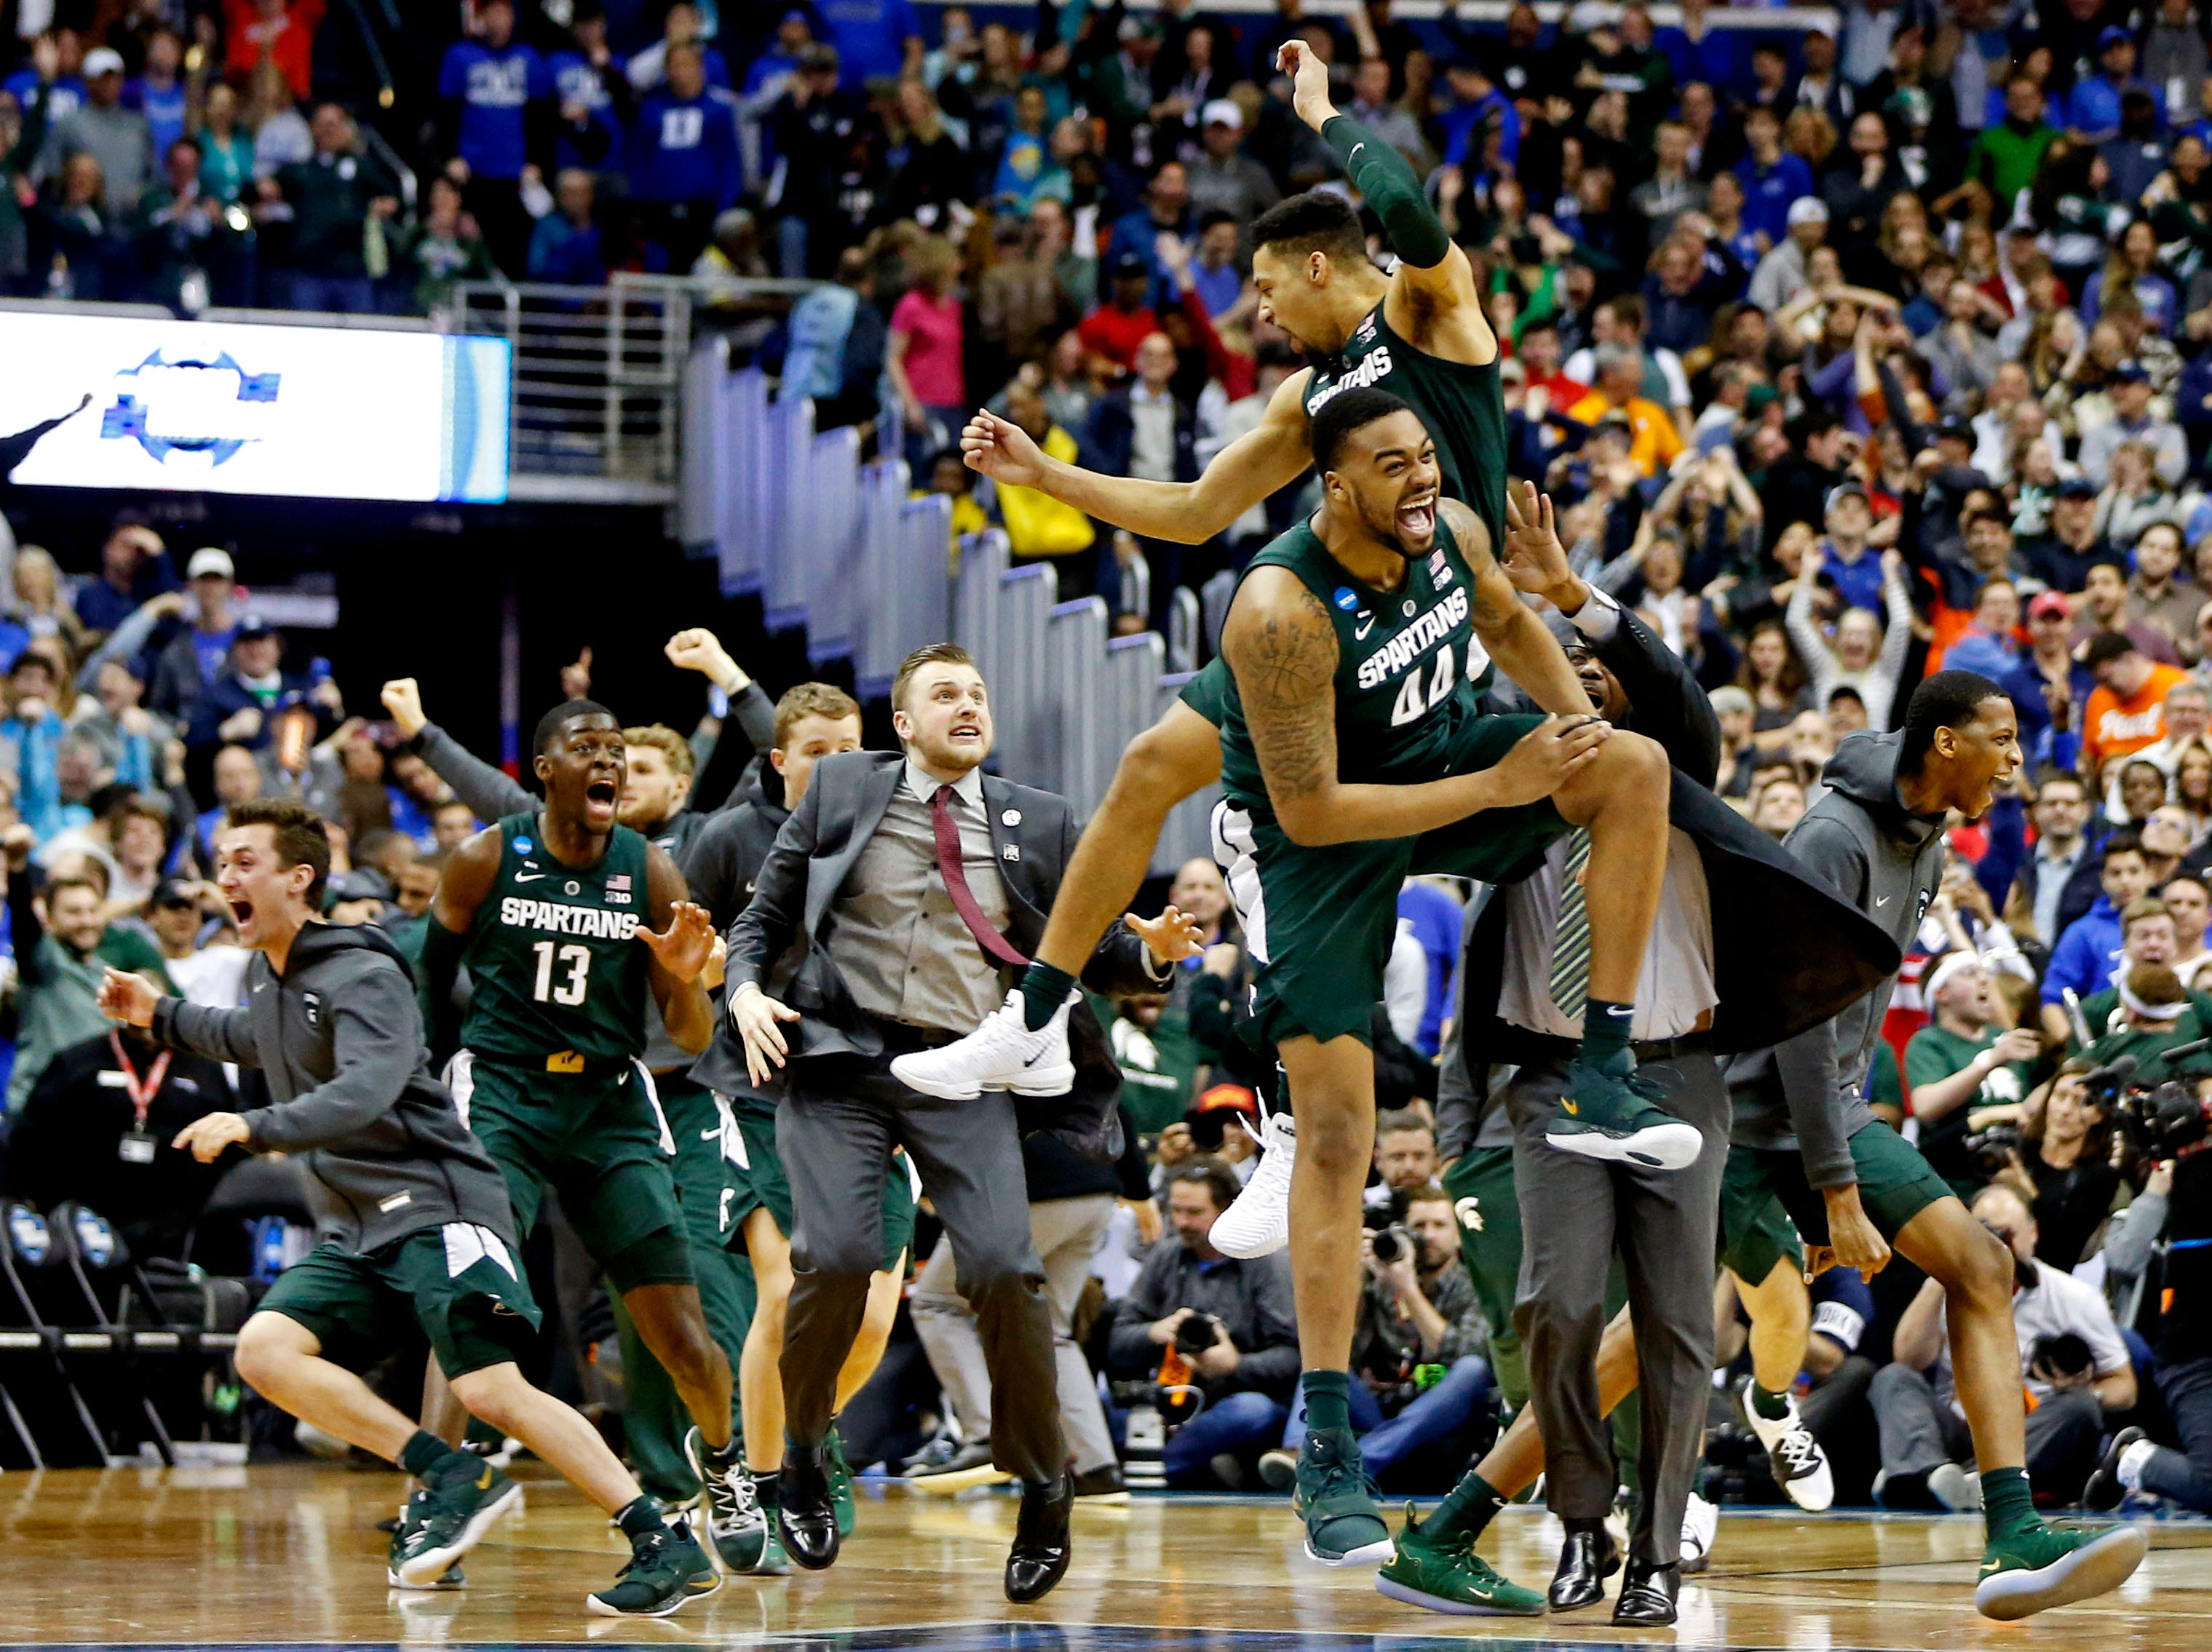 Mar 31, 2019; Washington, DC, USA; Michigan State Spartans forward Nick Ward (44) and Michigan State Spartans forward Kenny Goins (25) celebrate after beating the Duke Blue Devils in the championship game of the east regional of the 2019 NCAA Tournament at Capital One Arena. Mandatory Credit: Amber Searls-USA TODAY Sports